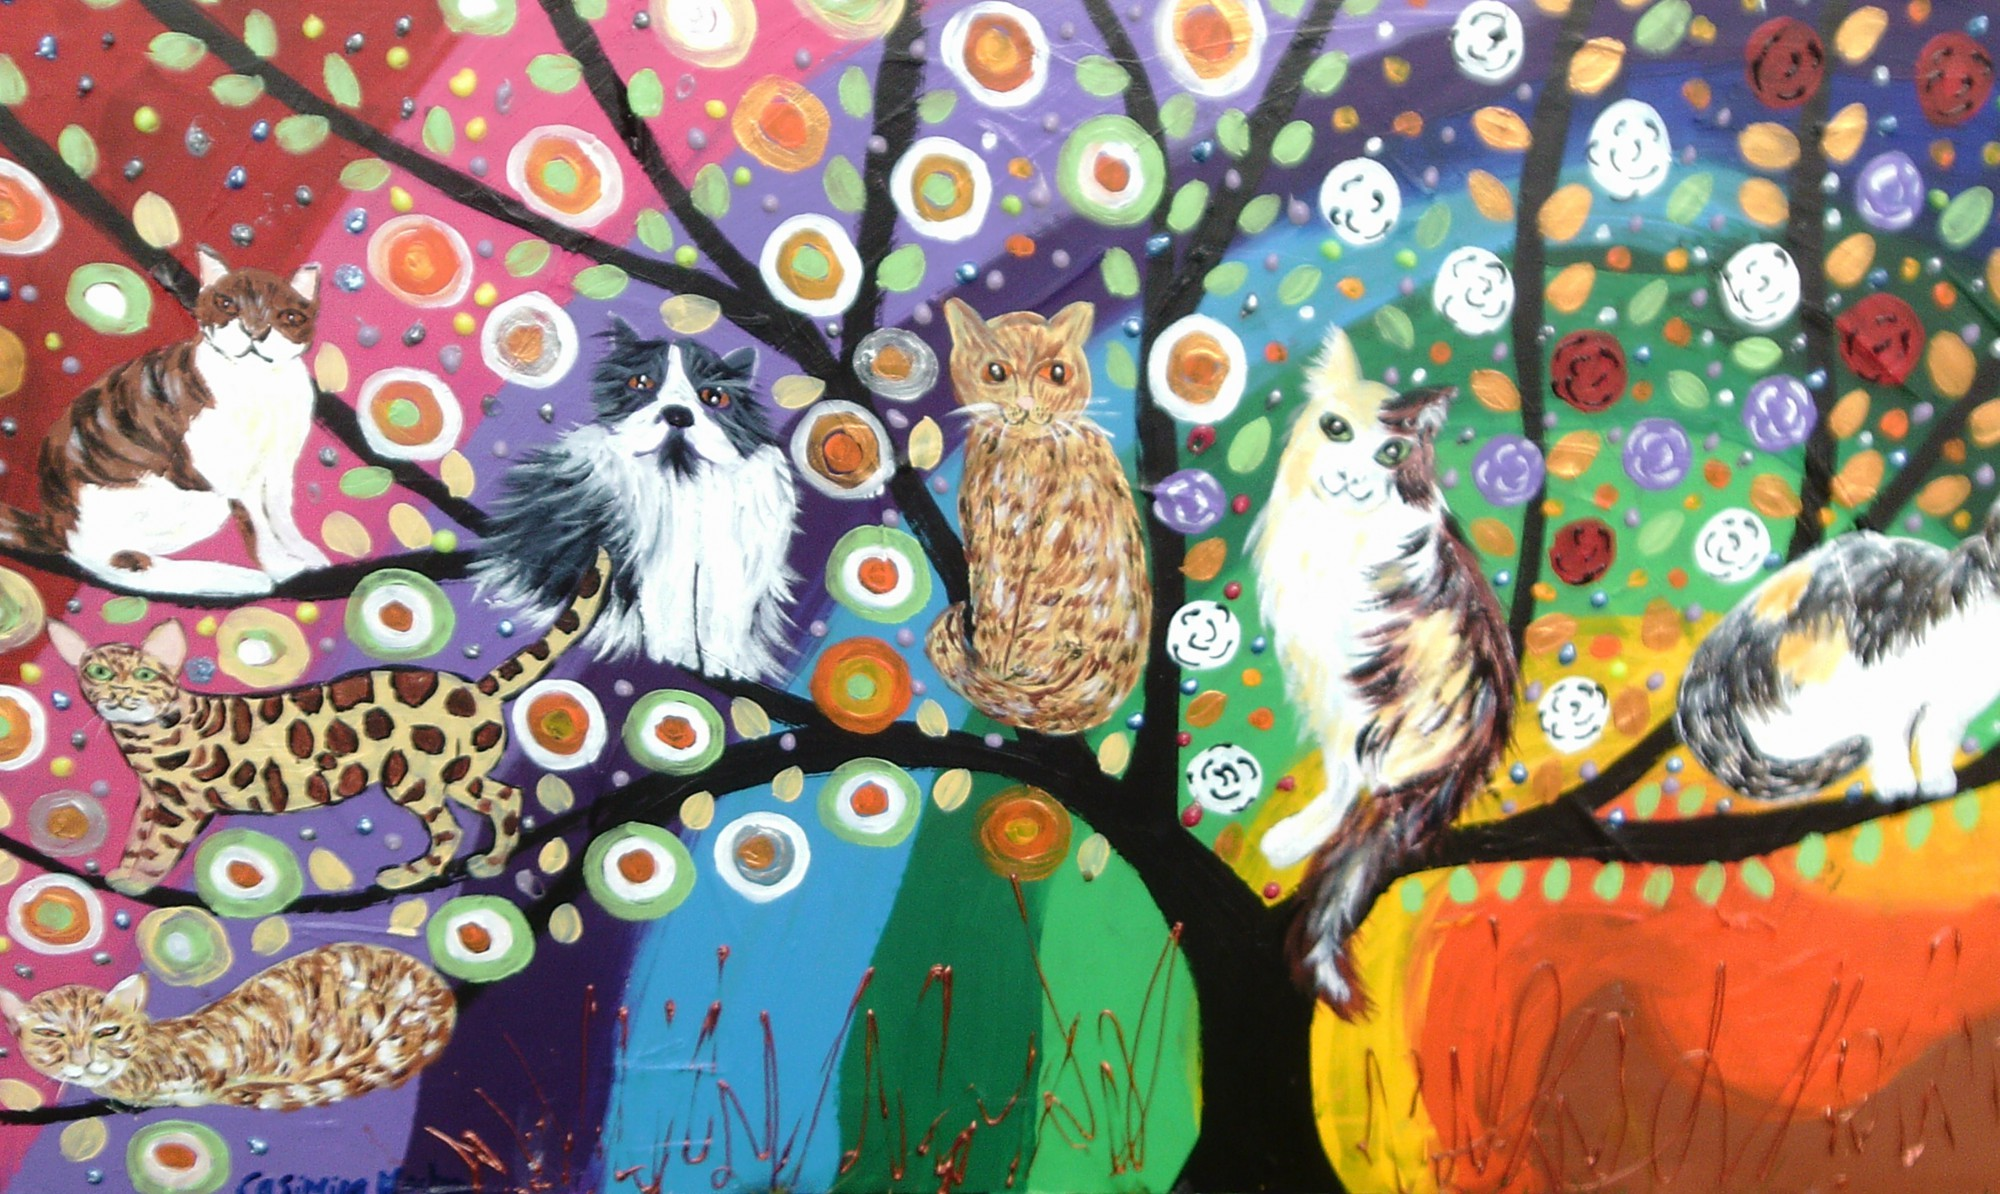 Colourful Tree of Life with Quirky Cats